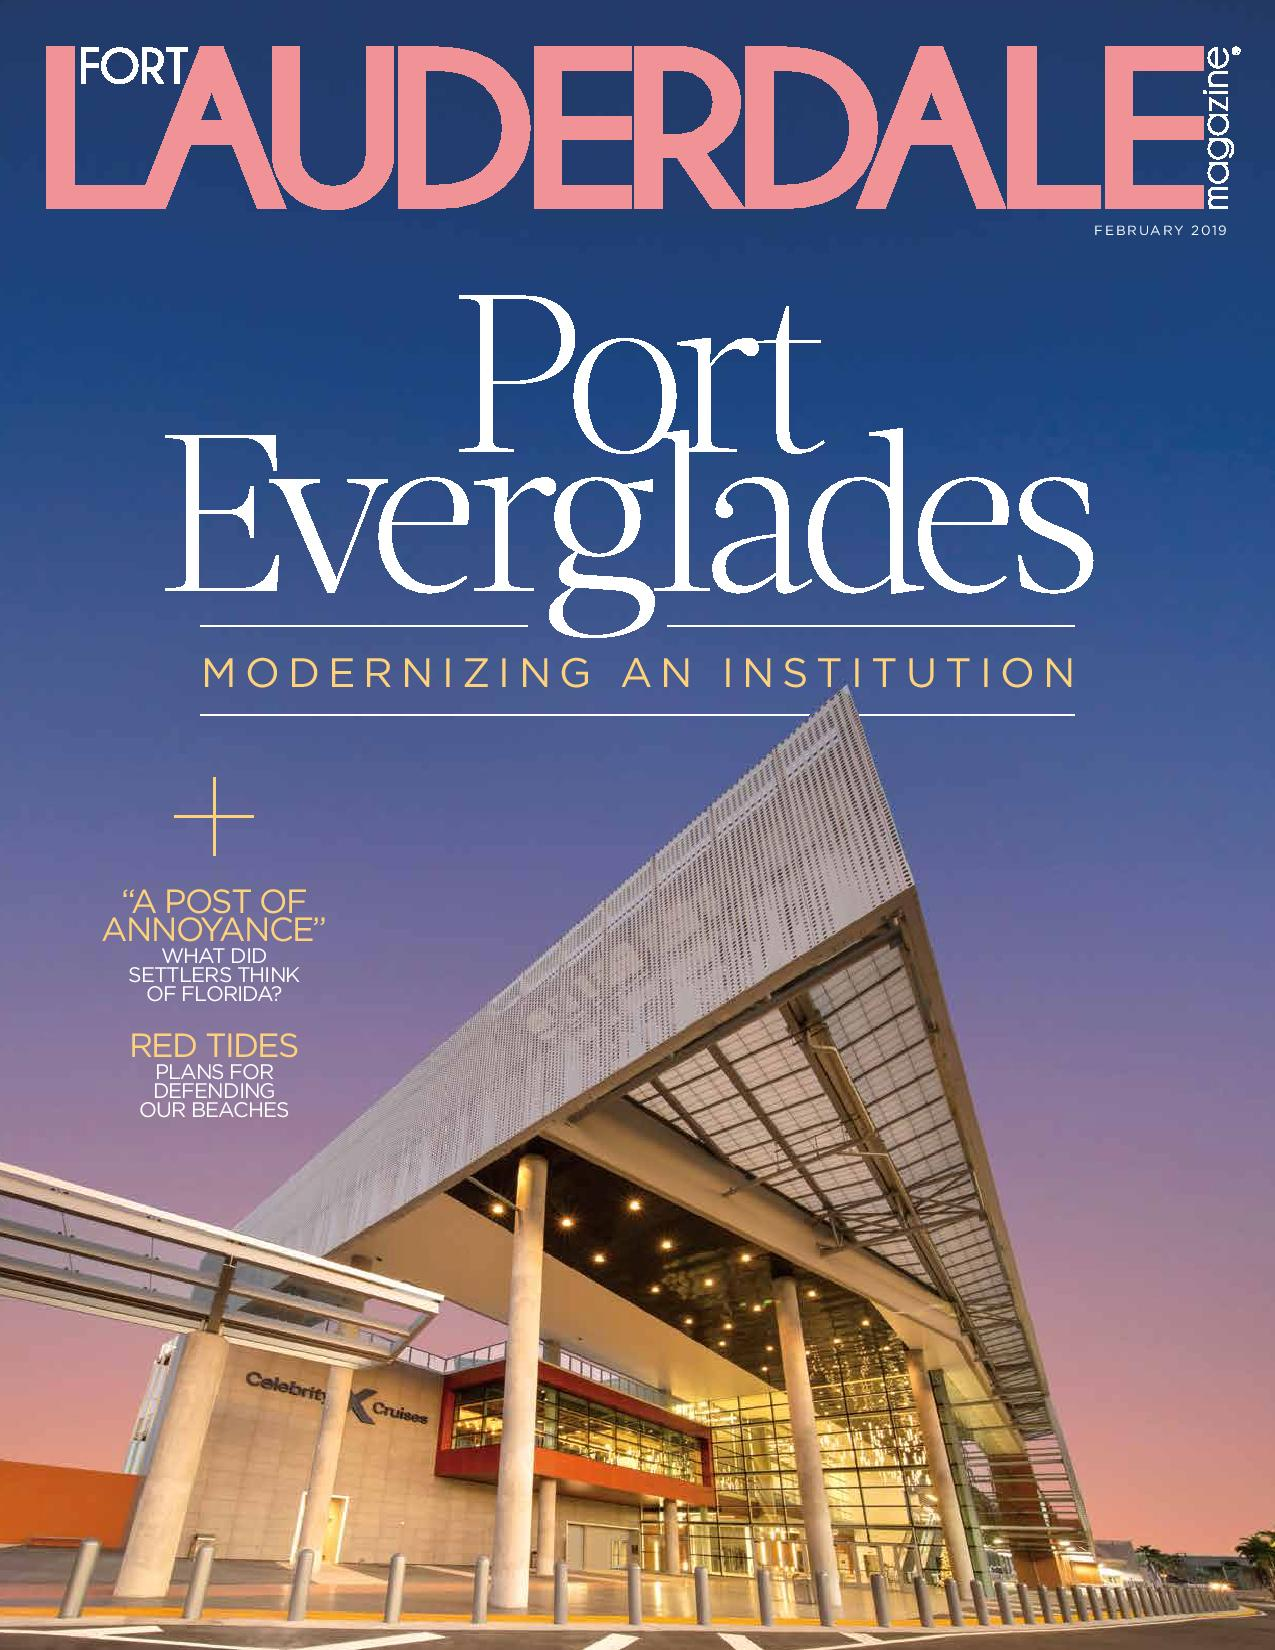 Port Everglades Modernizing An Institution